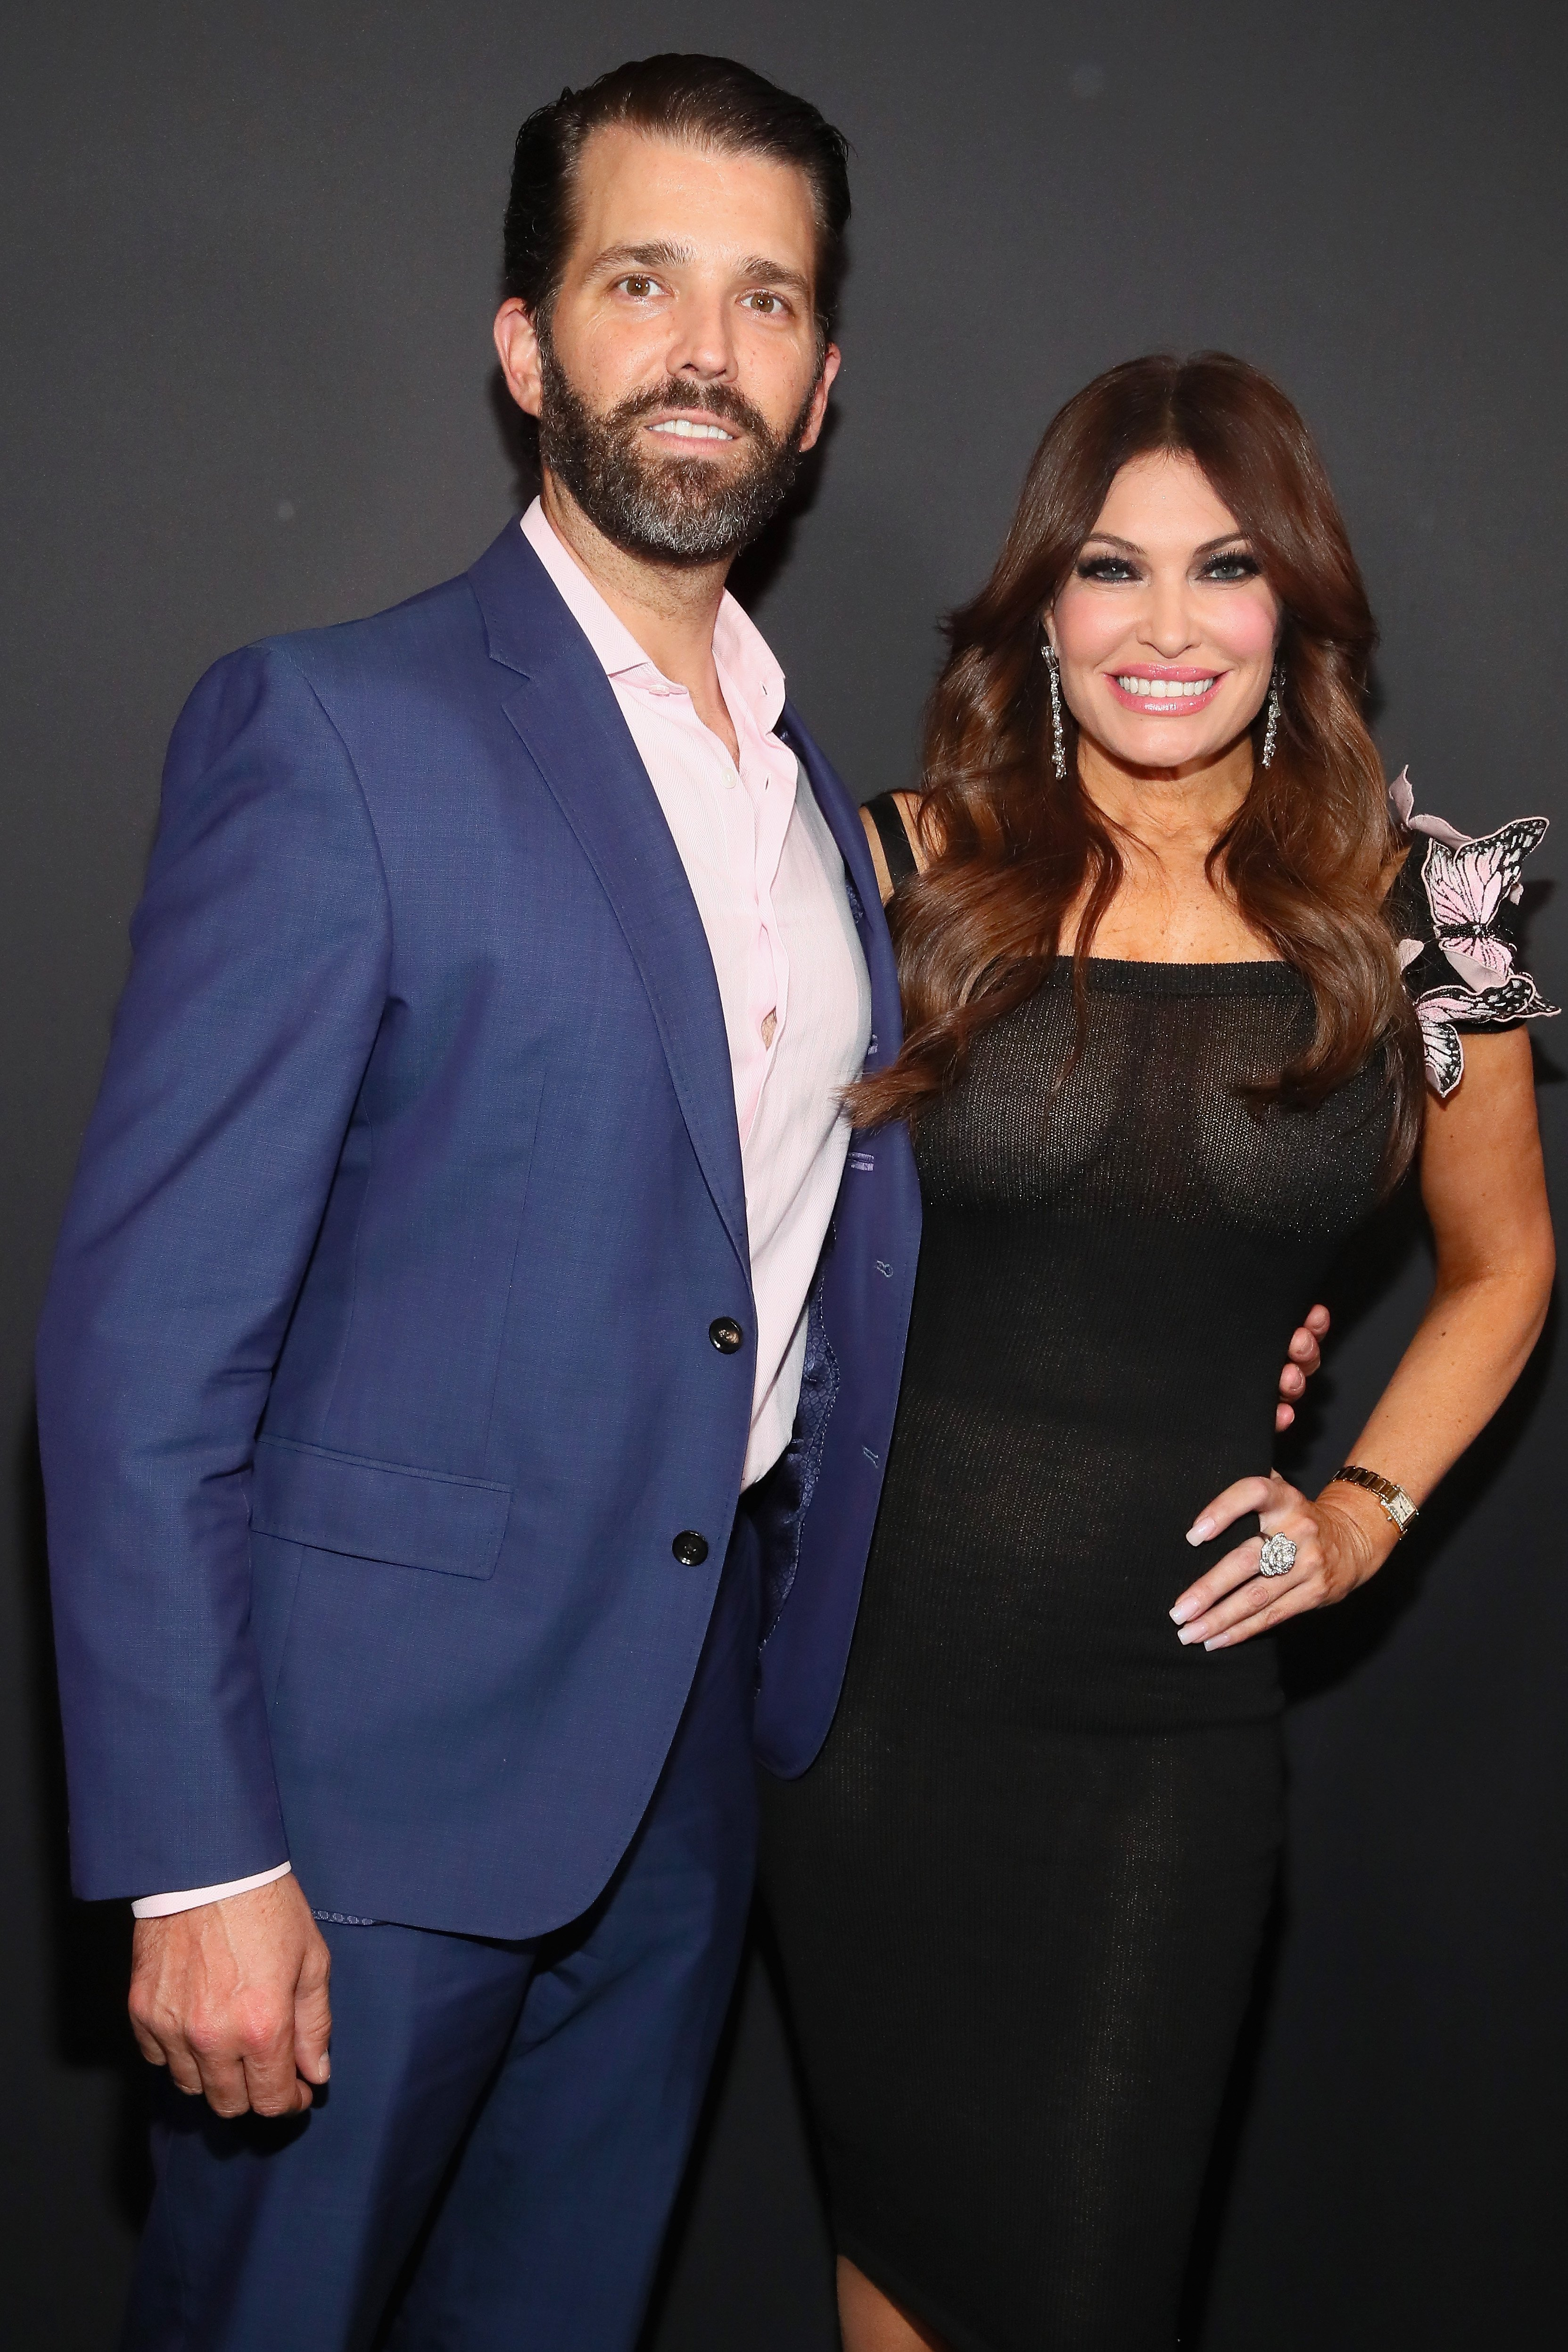 Donald Trump Jr. and Kimberly Guilfoyle backstage at the Zang Toi fashion show in New York City on February 13, 2019 | Photo: Getty Images